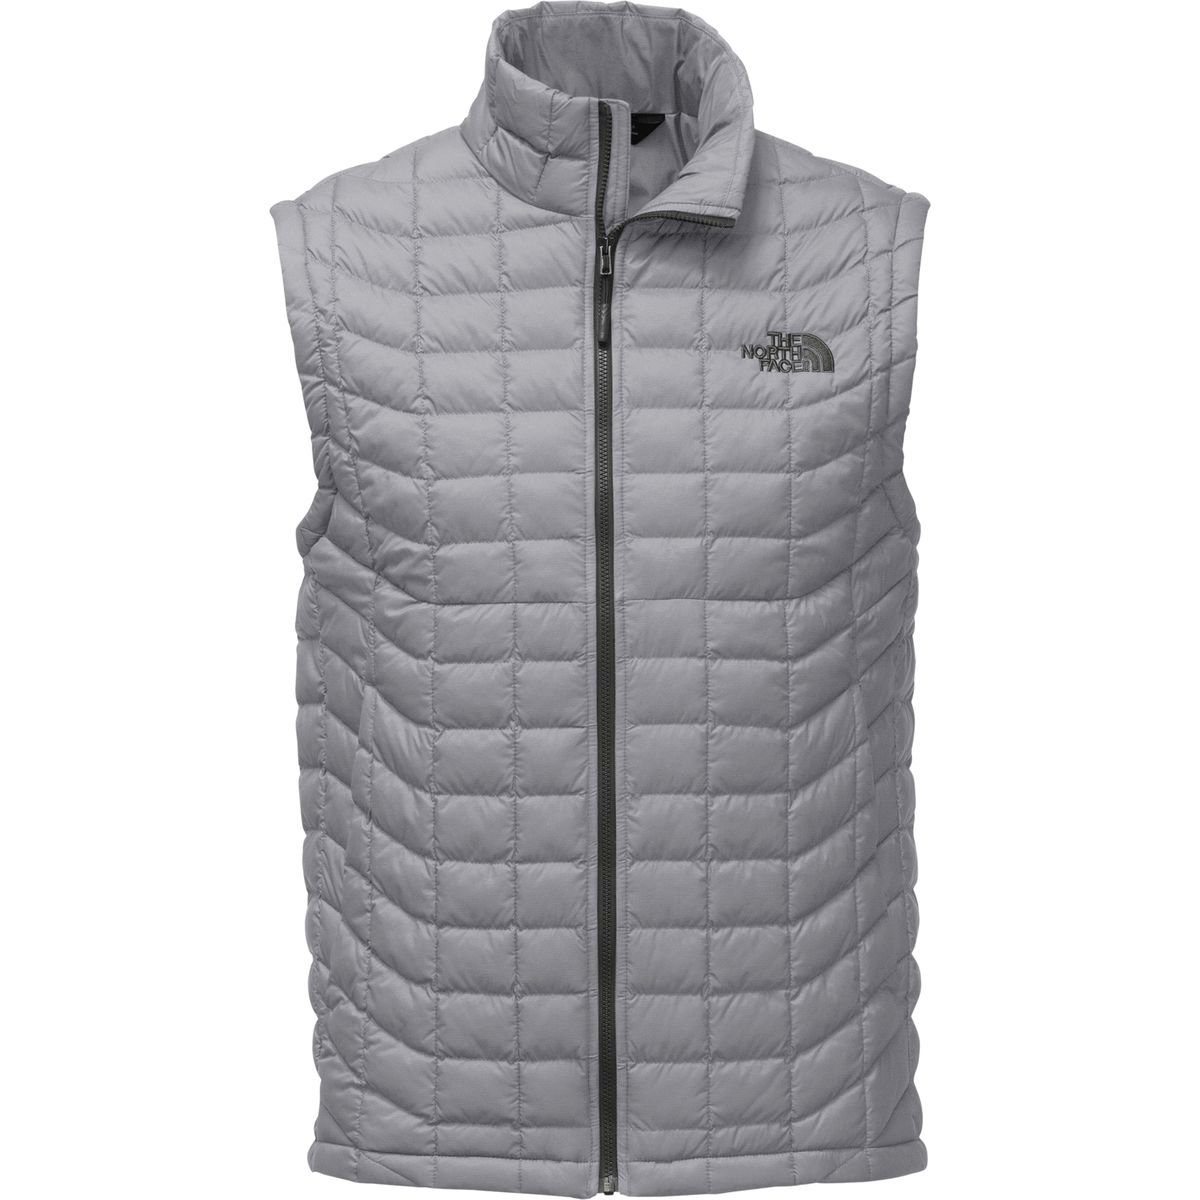 The North Face Men's Thermoball Vest Monument Grey Matte (Medium)